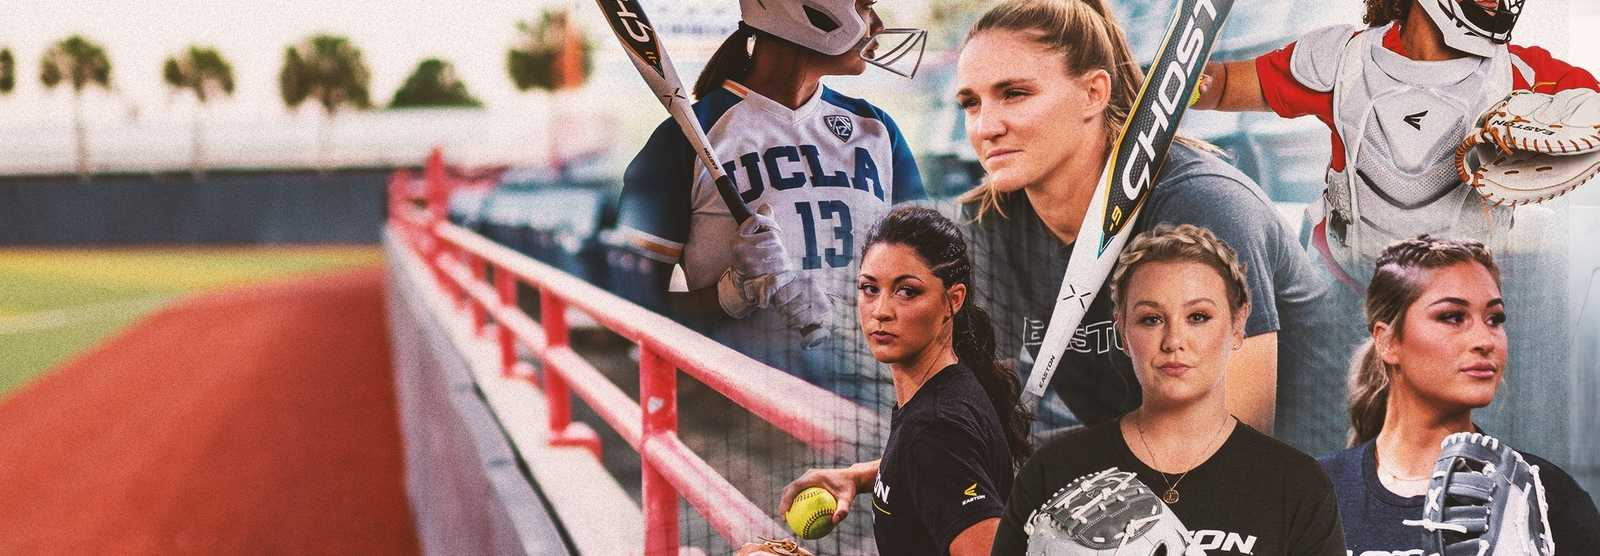 dont-hold-back-female-softball-gear-collection